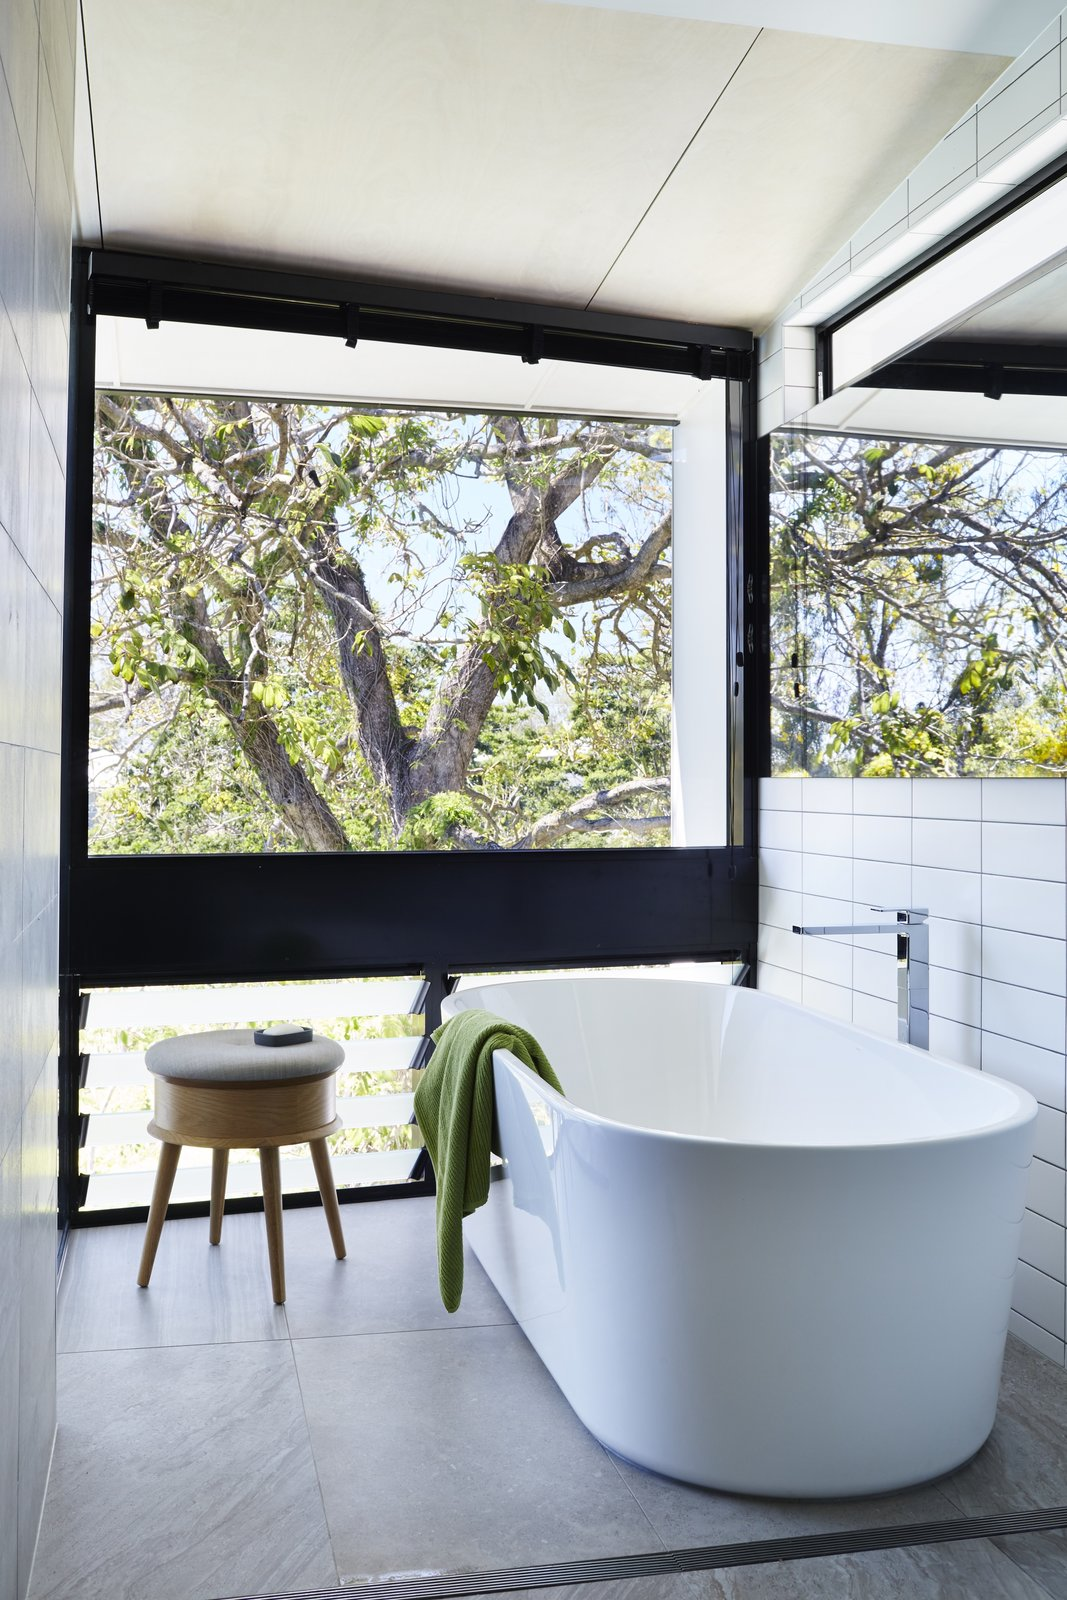 Tagged: Bath Room, Freestanding Tub, Soaking Tub, and Subway Tile Wall. An Edgy Slatted Facade Conceals a Striking Indoor/Outdoor Home in Brisbane - Photo 6 of 12